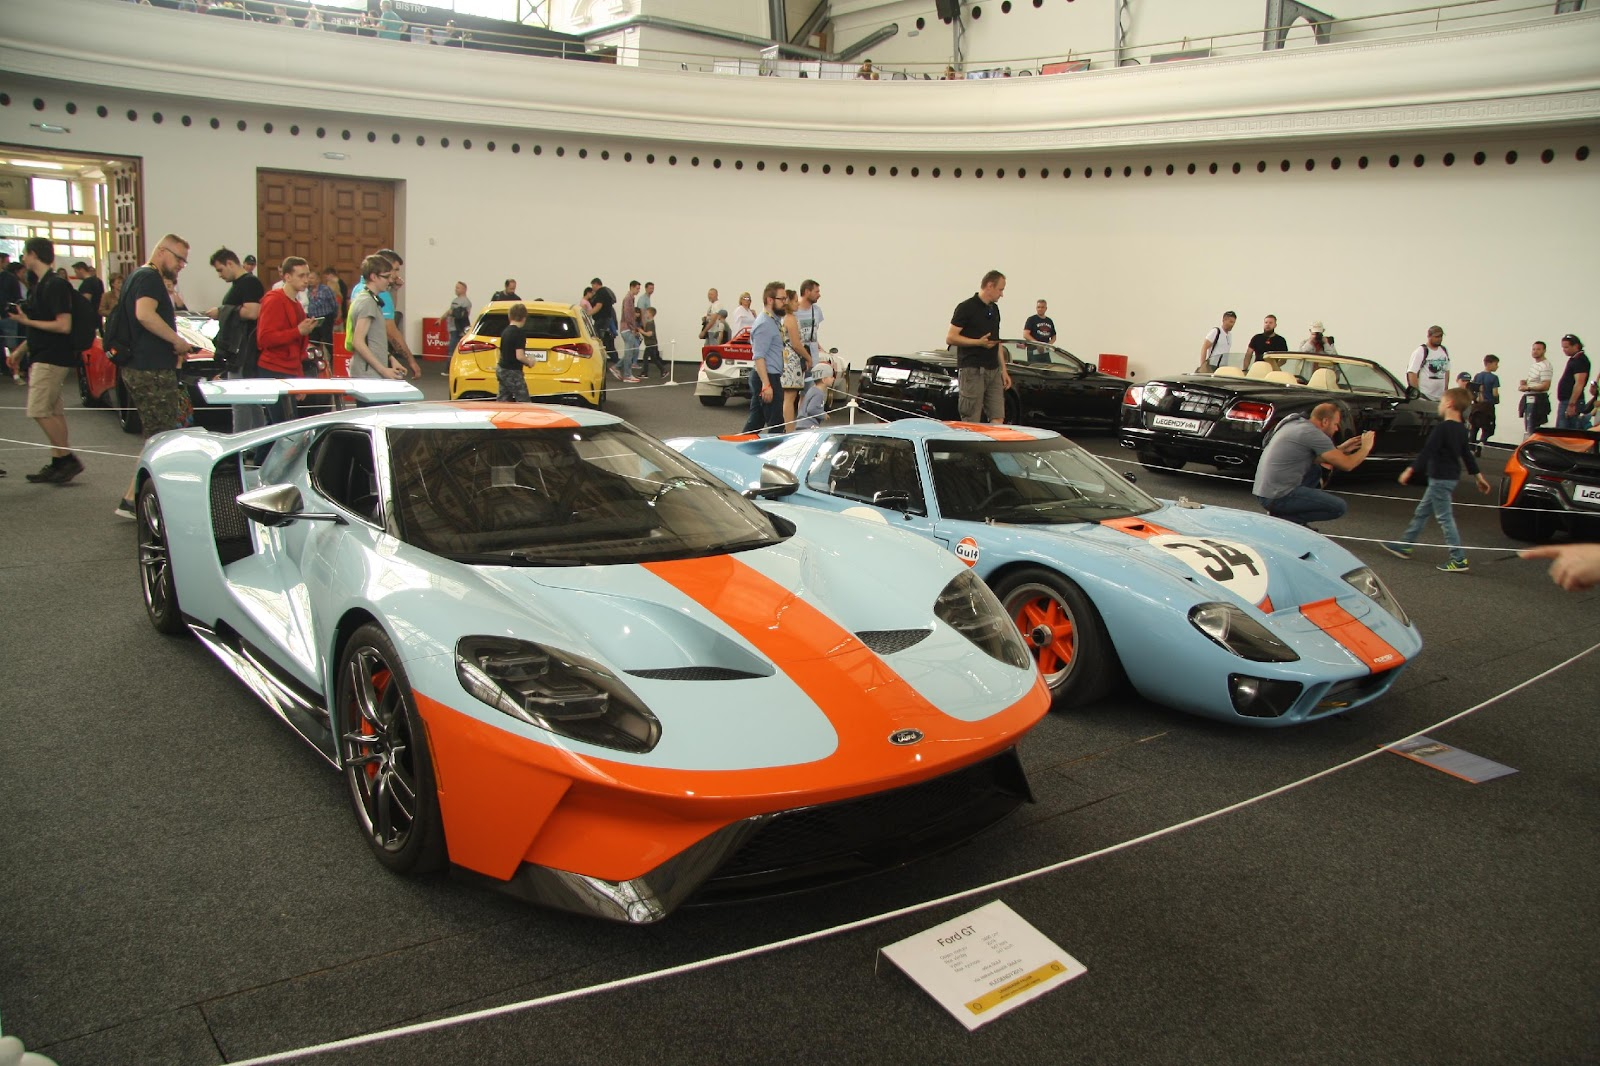 File:Ford GT 2018 and Ford GT 1968 at Legendy 2019 in Prague.jpg ...